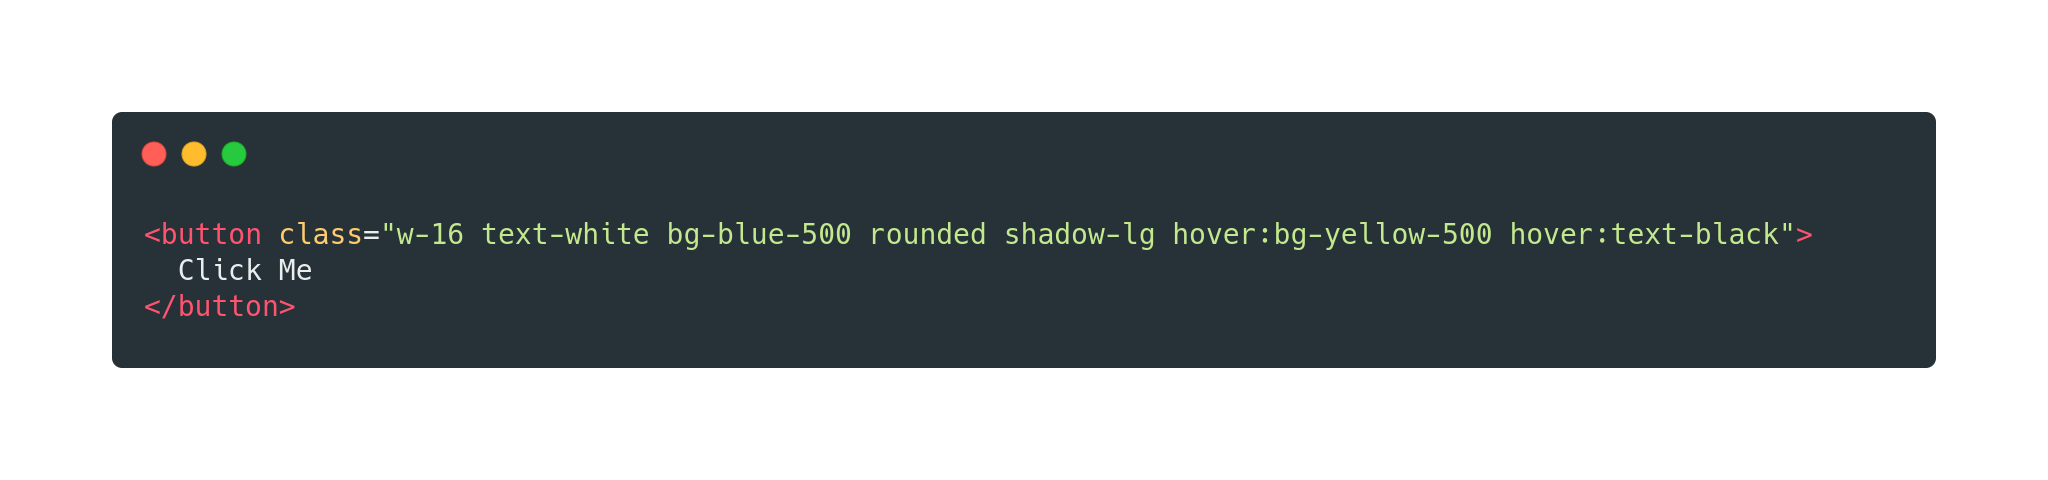 Using Tailwind CSS on a HTML button